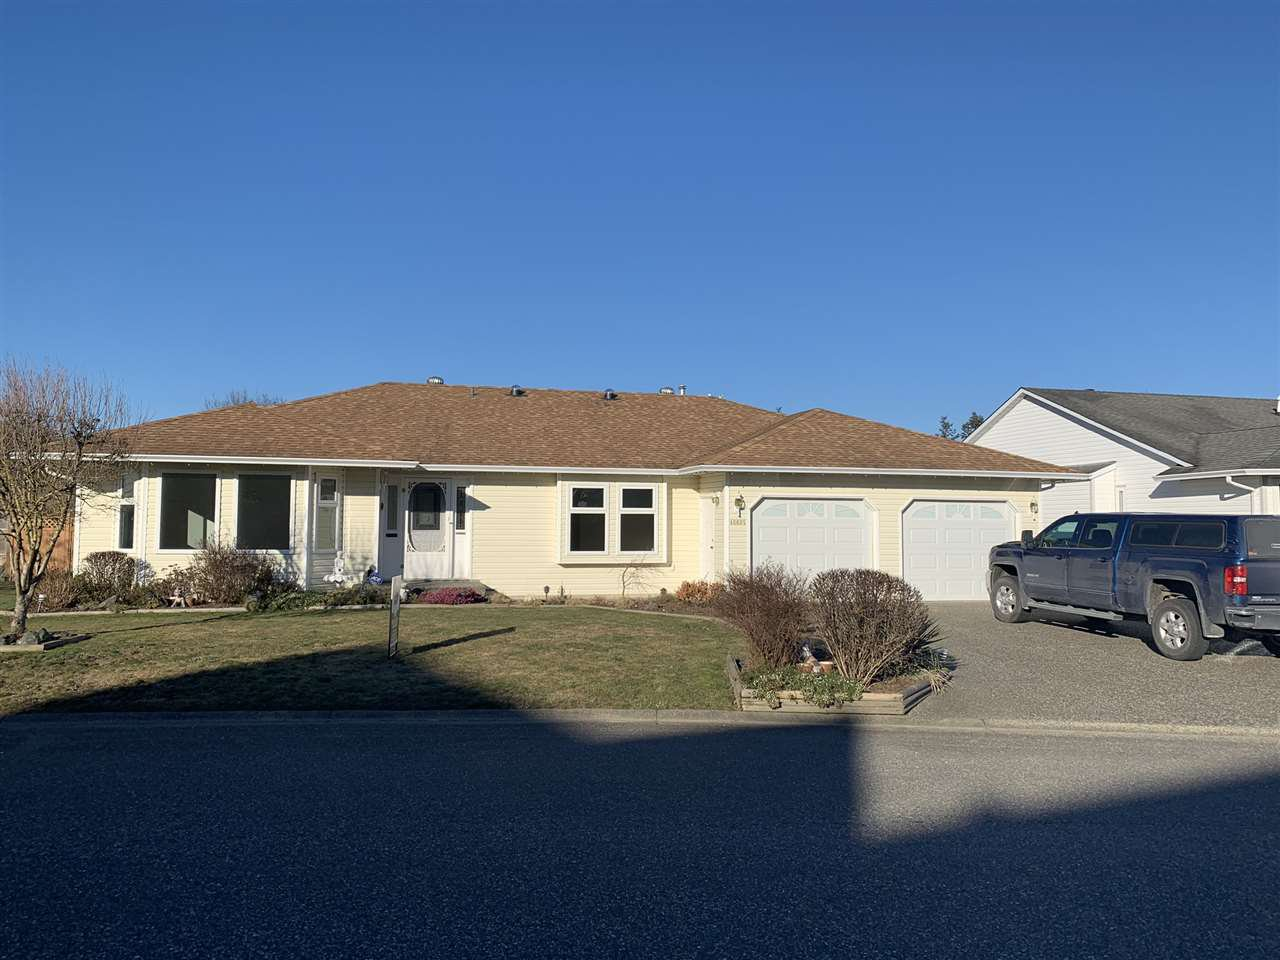 Main Photo: 46605 RAMONA Drive in Chilliwack: Chilliwack E Young-Yale House for sale : MLS®# R2337892